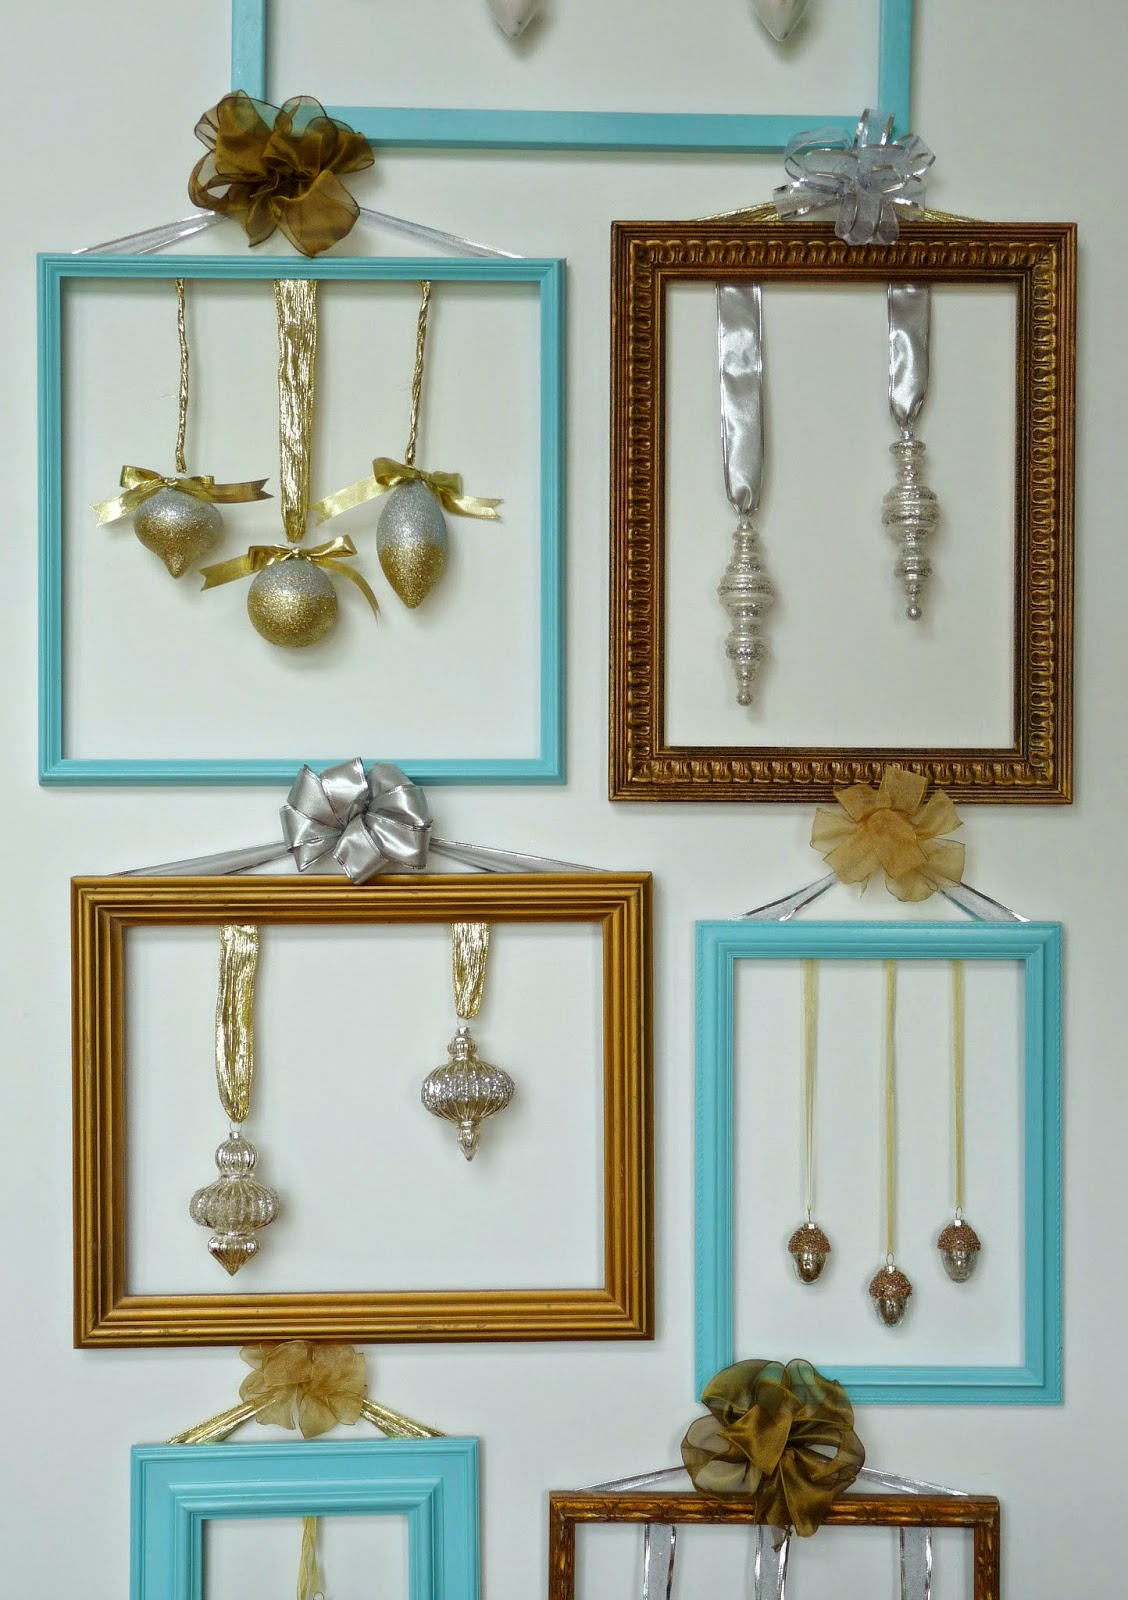 Framed Christmas ornaments